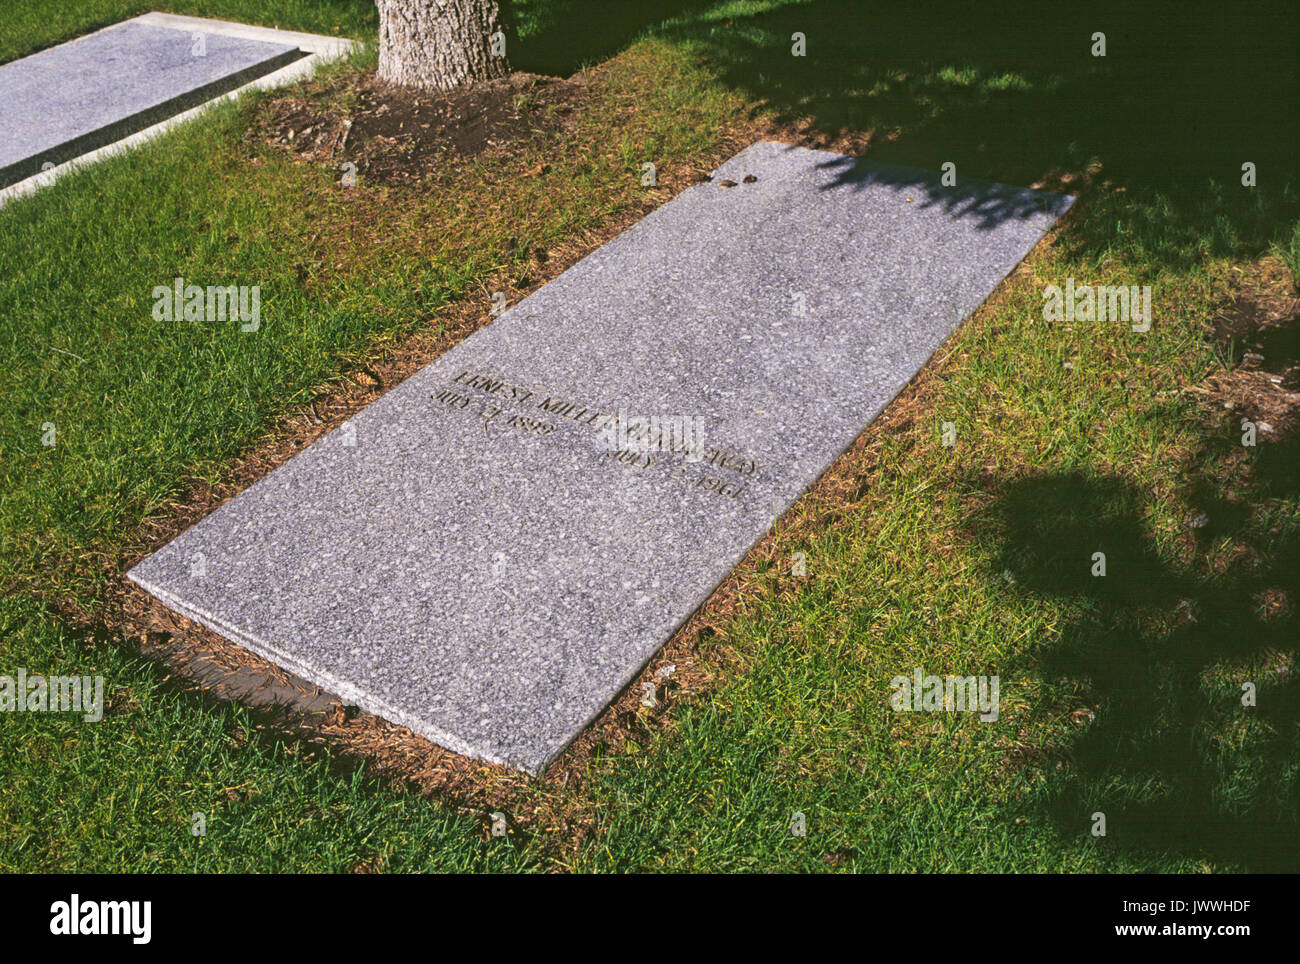 The grave site of Ernest Hemingway, in a cemetery in Ketchum, Idaho. - Stock Image